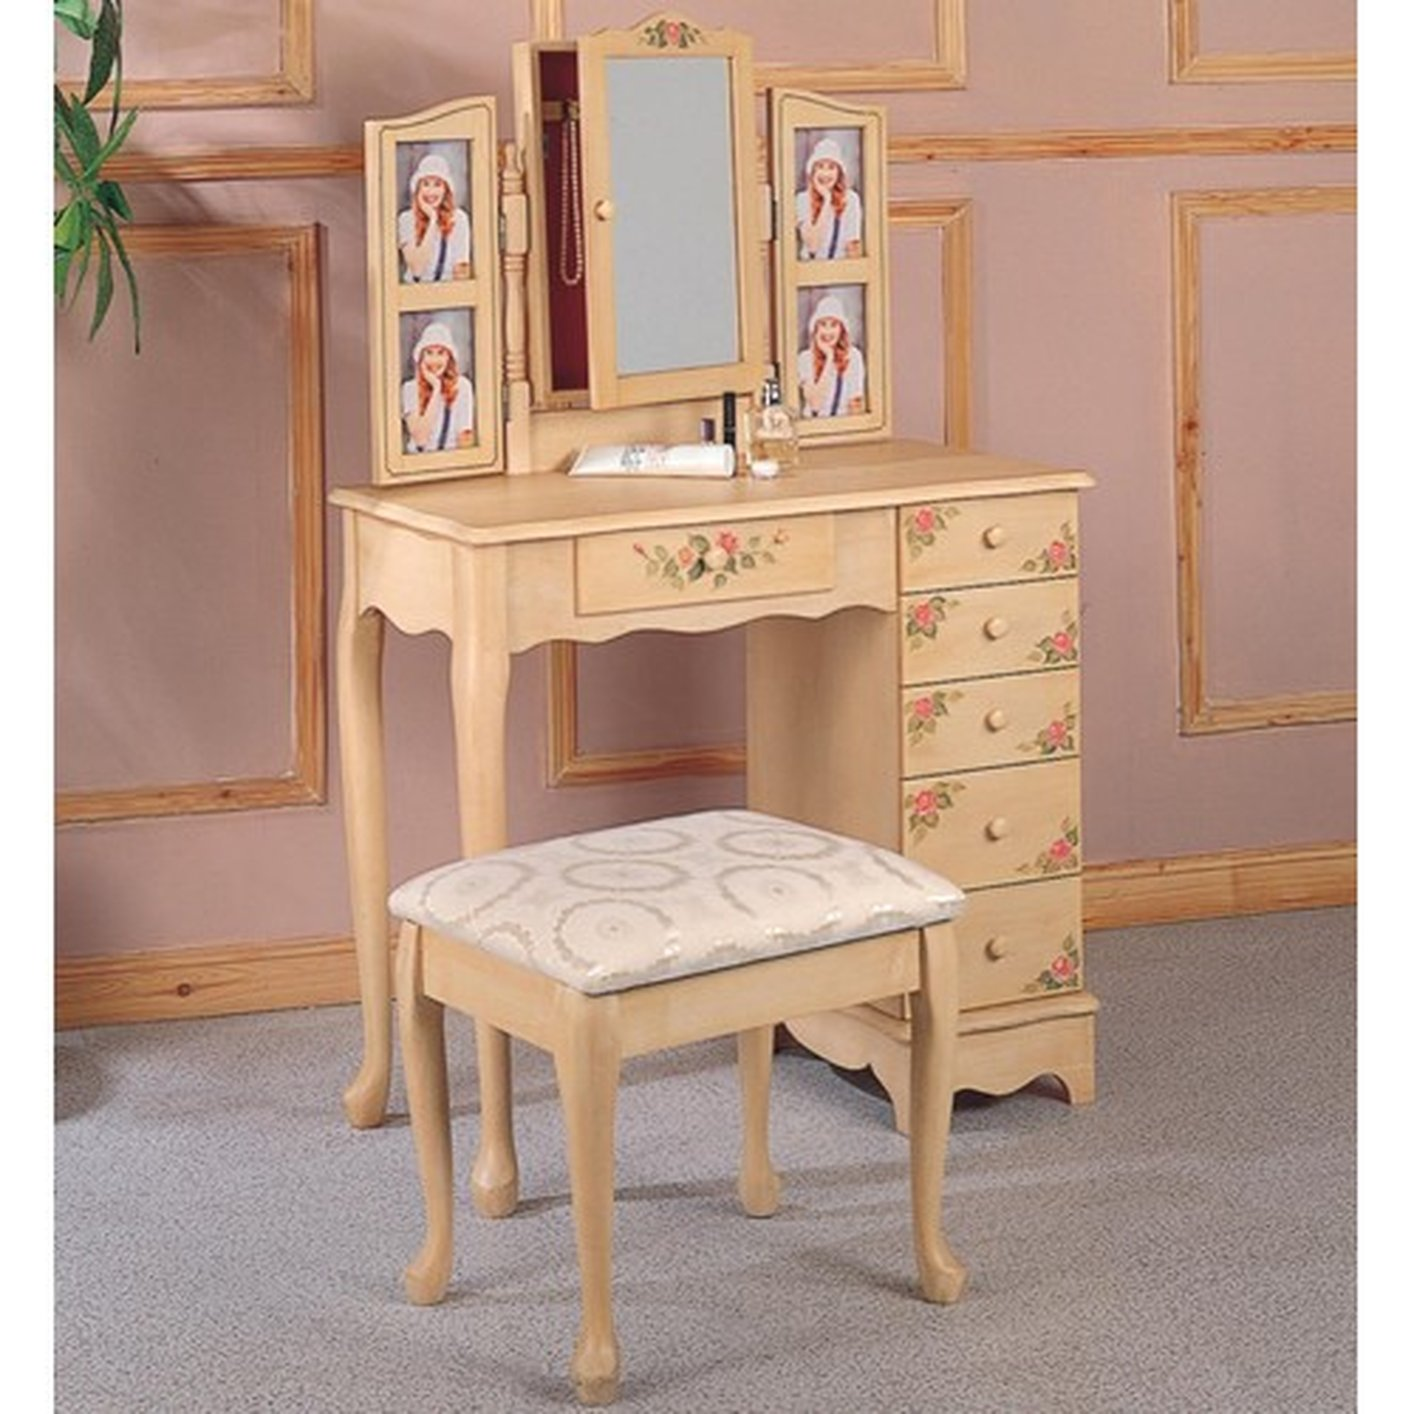 Beige Fabric Vanity Set with Stool - Steal-A-Sofa Furniture Outlet ...